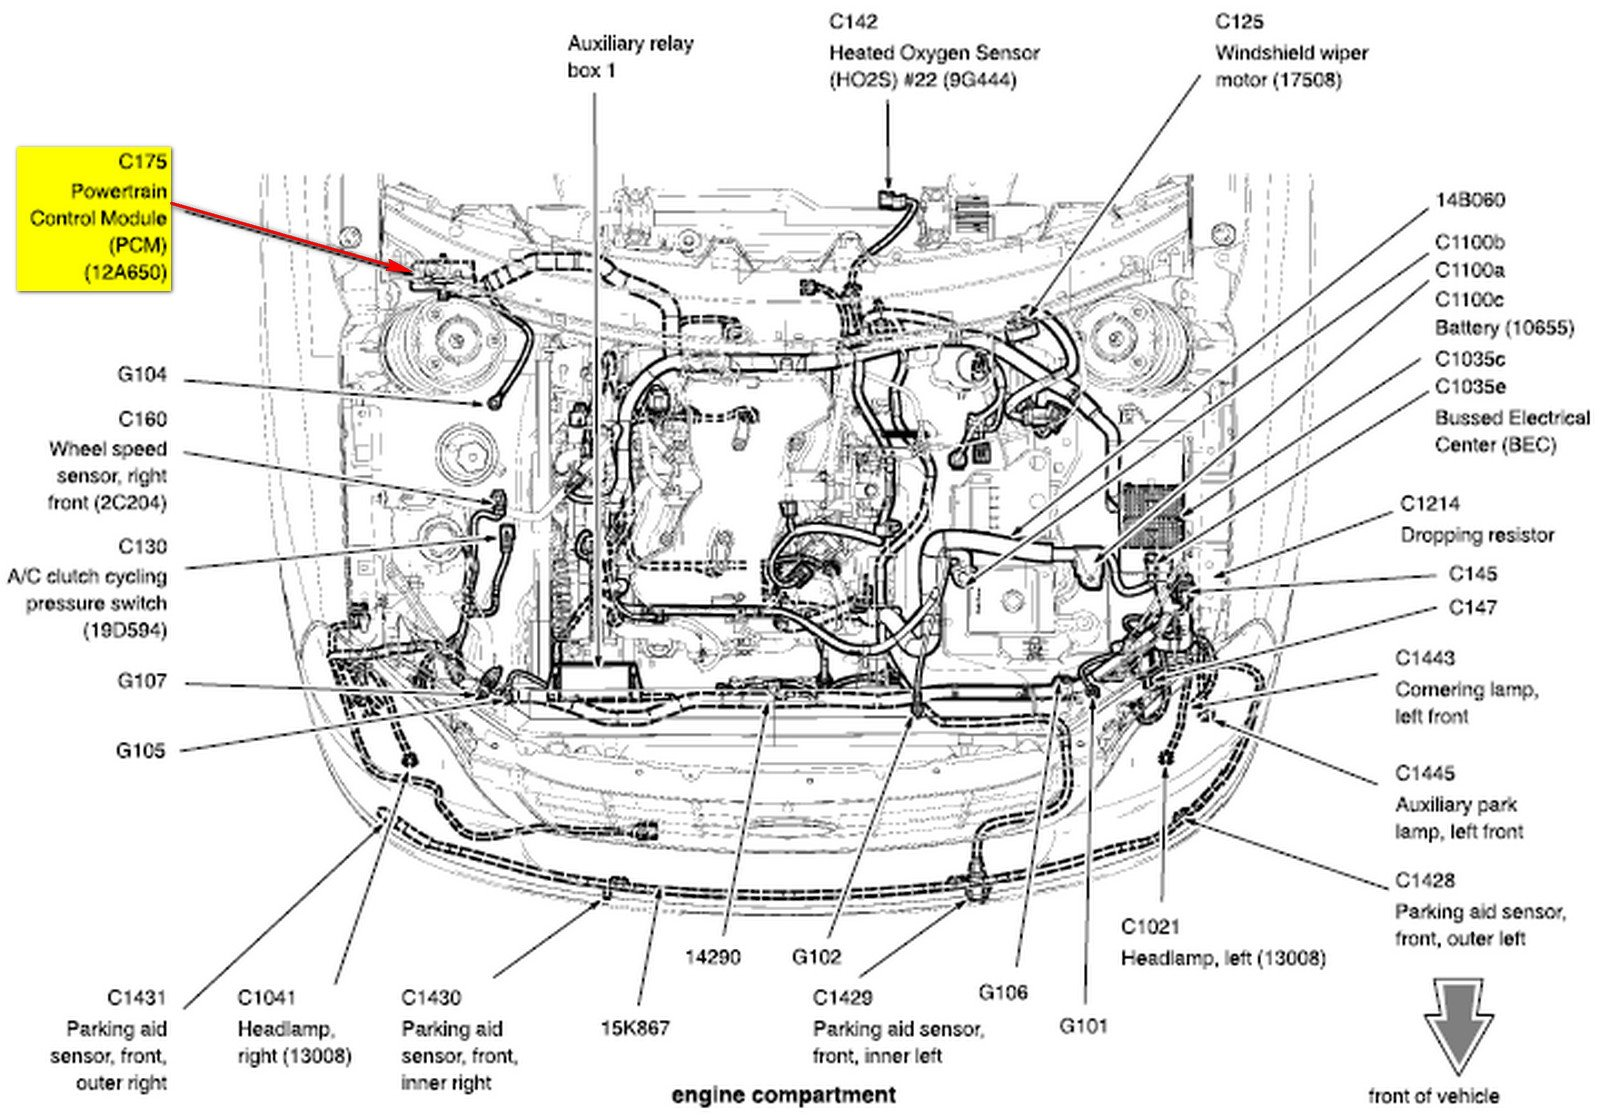 2005 Ford Freestar 3 9 L Engine Wiring Diagram